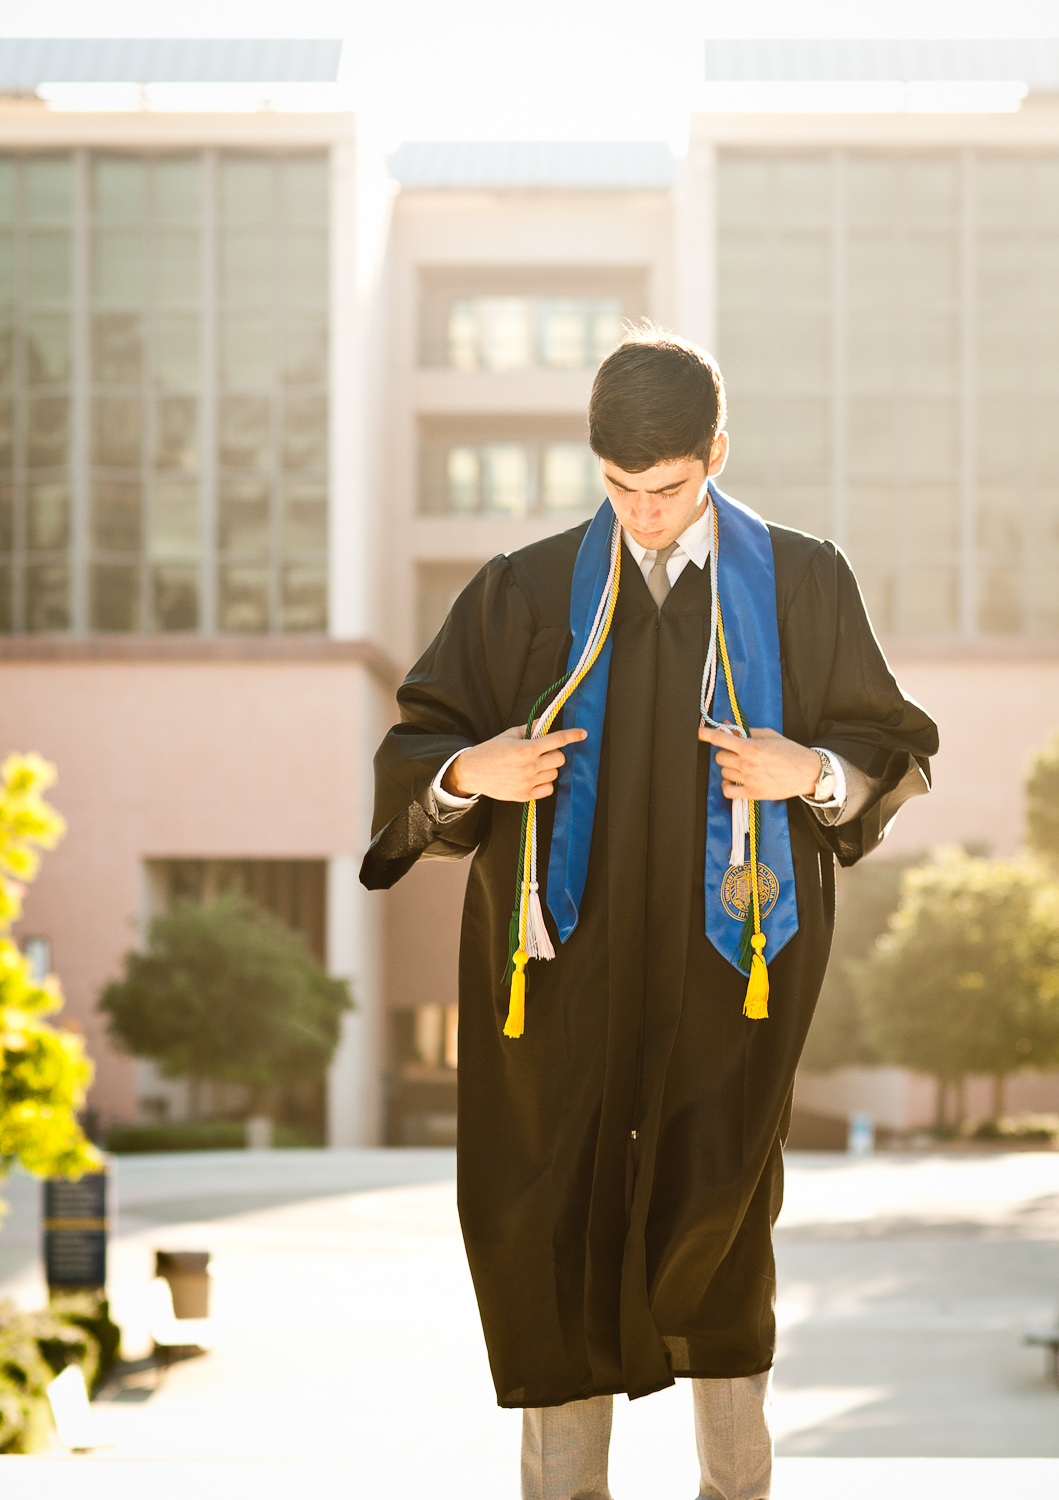 Bryan-Miraflor-Photography-Adrian-Graduation-Photoshoot-0052.jpg